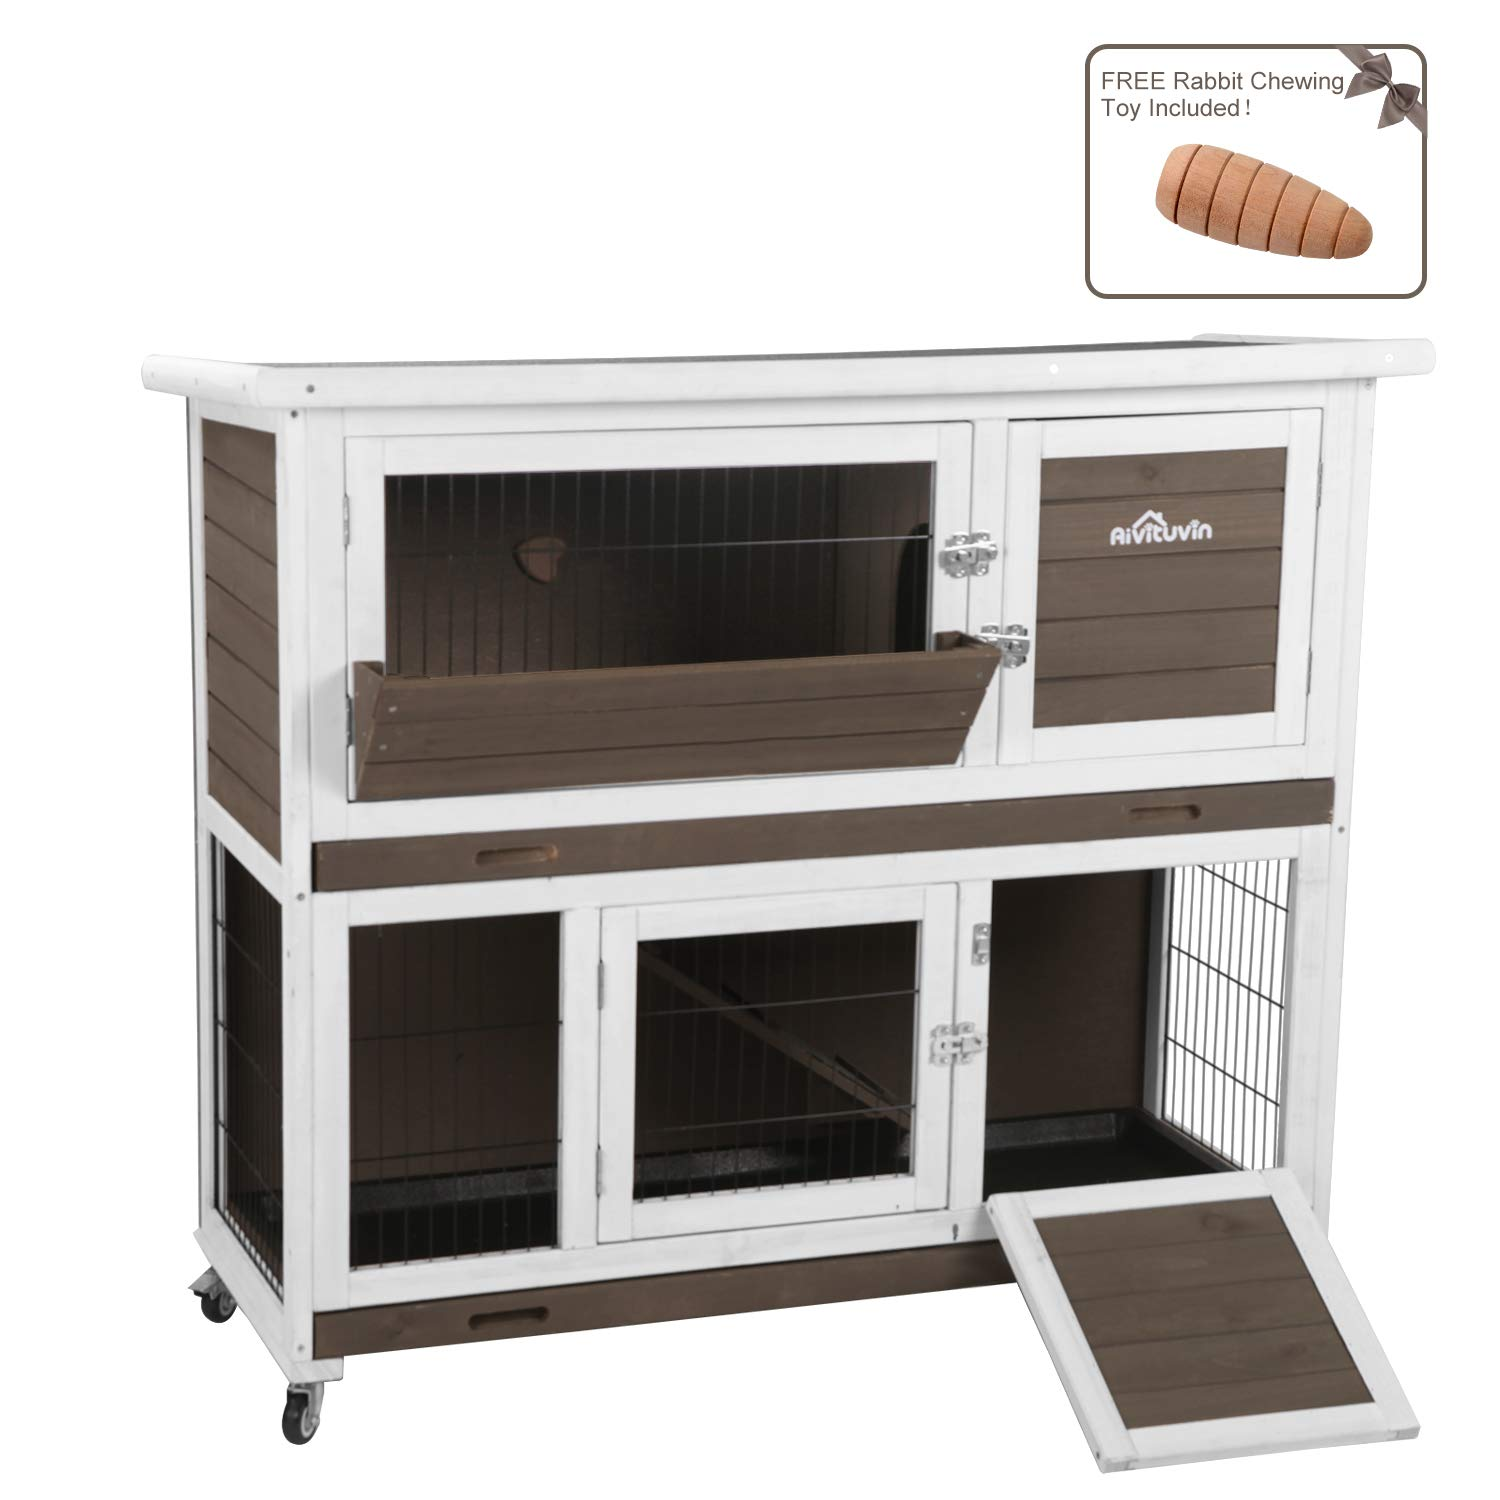 Aivituvin Rabbit Hutch with Run Indoor and Outdoor 47 Inch 2- Story Bunny cage on Wheels - 2 Deep No Leakage Pull Out Tray